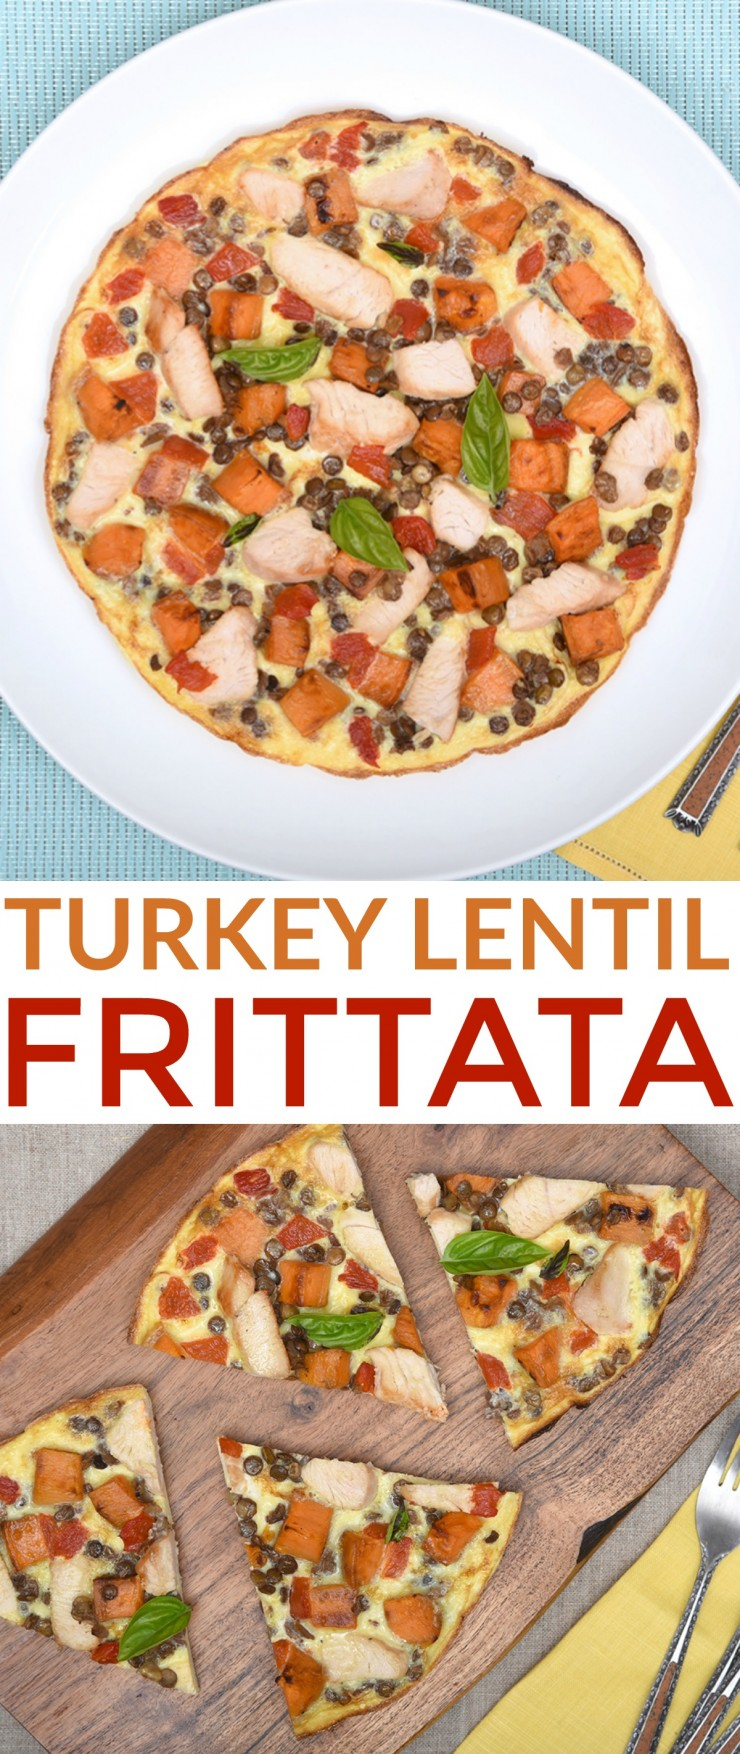 Protein-Packed Turkey Lentil Frittata is a healthy meal the whole family will enjoy for breakfast, lunch or dinner.